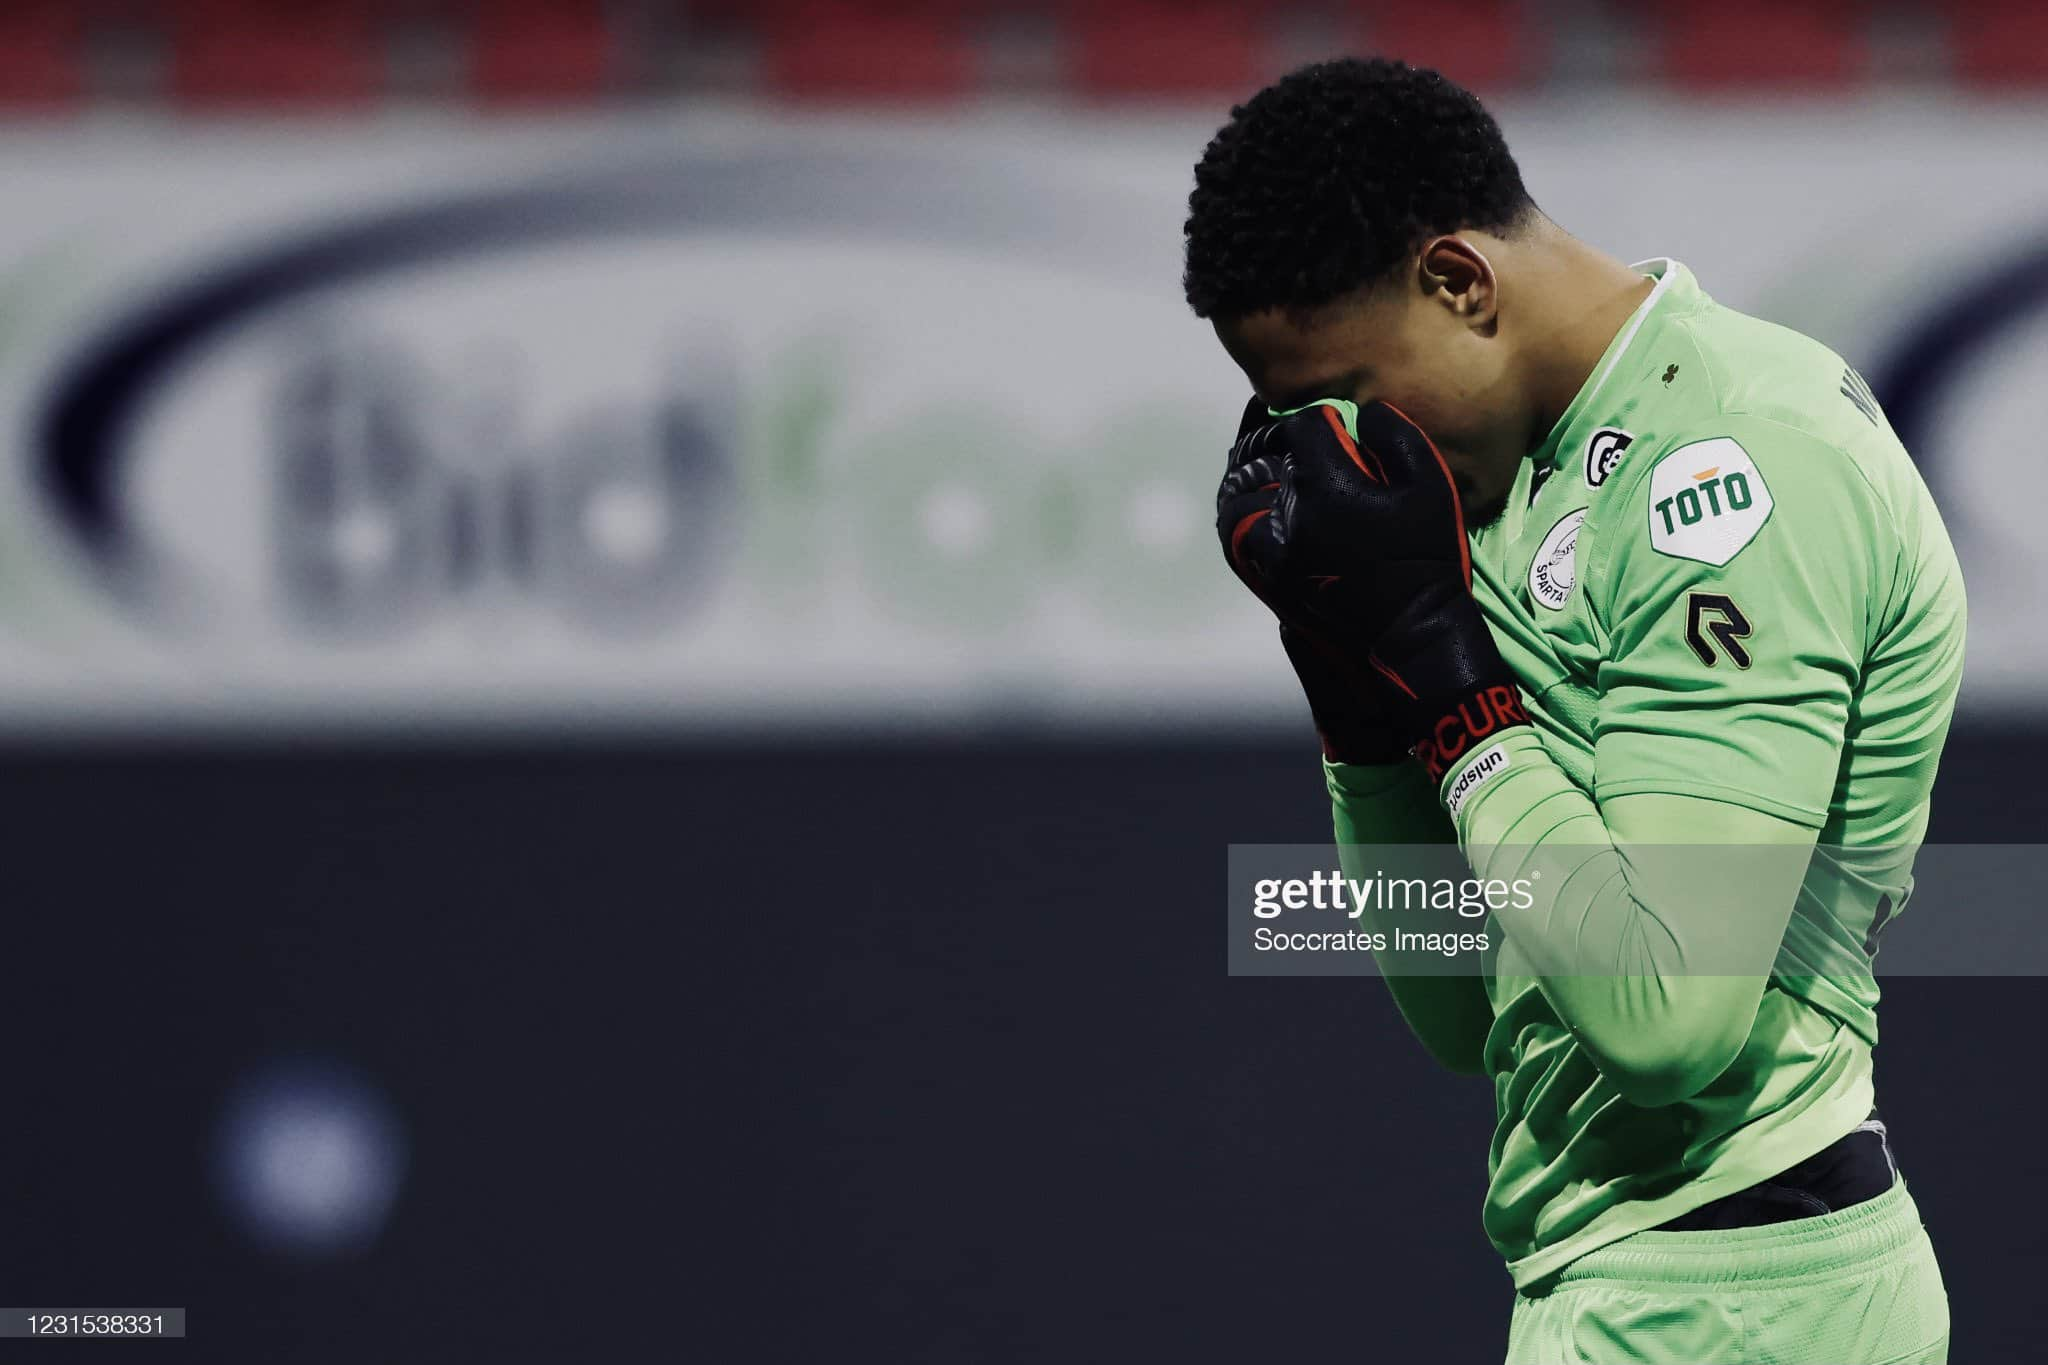 Okoye Reflects On 'Missed Opportunity' After Sparta Rotterdam 's 1-1 Draw Vs Emmen